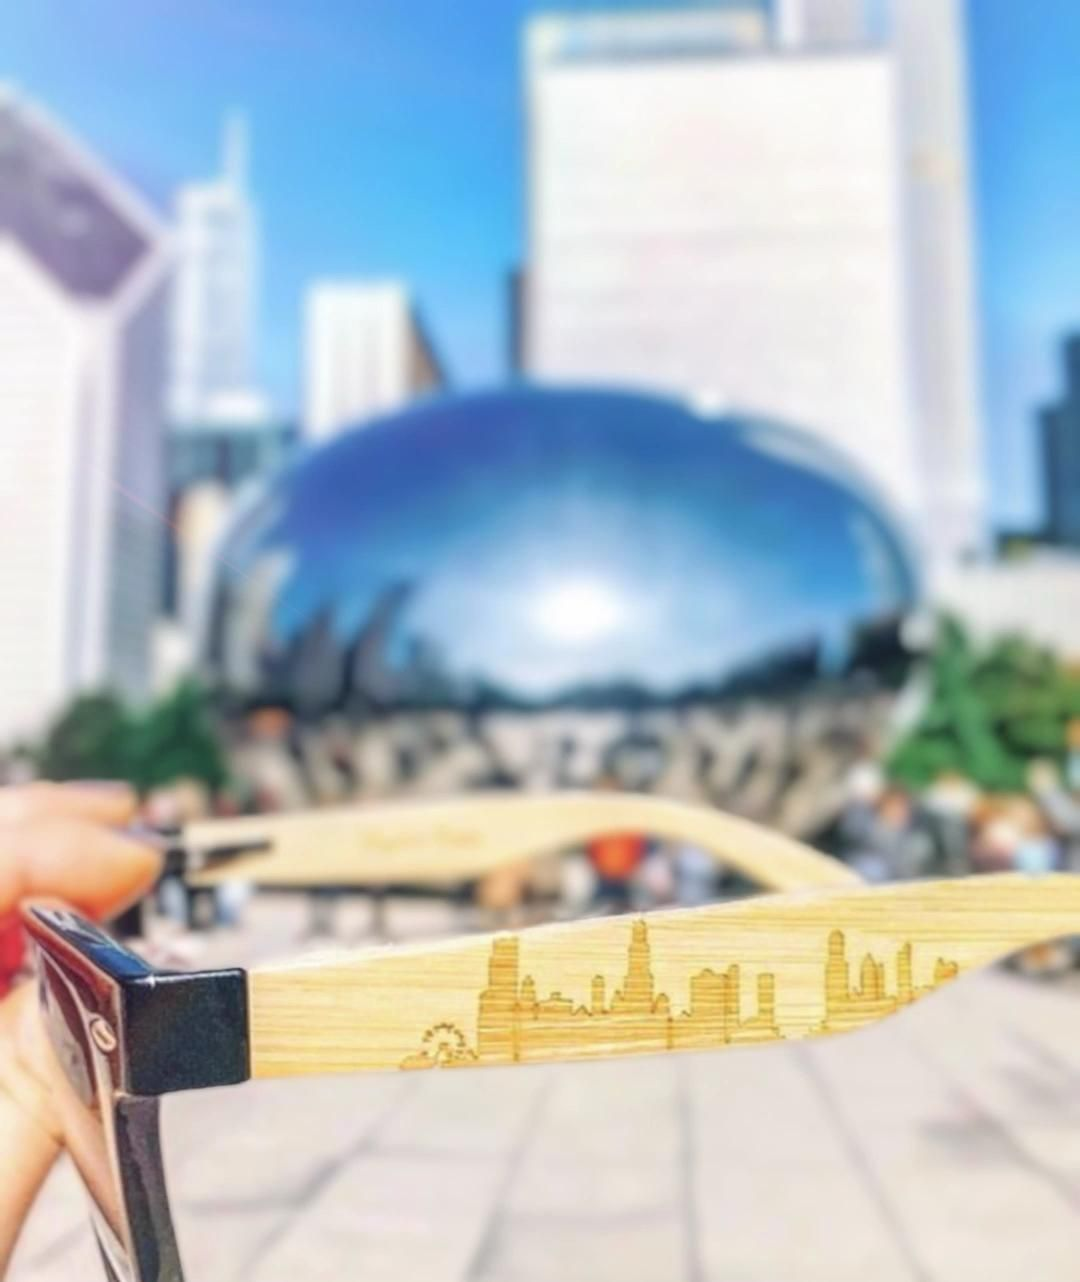 Polarized engraved Chicago skyline sunglasses next to the bean 😎  • • • • • #ilovechicago #abc7chicago #chicagobucketlist #uchicago #igchicago #chicagoland #chicagolife #jj_chicagoland #chicagoig #windycityspinners #windycity #likechicago #trib2016 #chicagoprimeshots #chigram #thisischicago #enjoyillinois #chicagogram